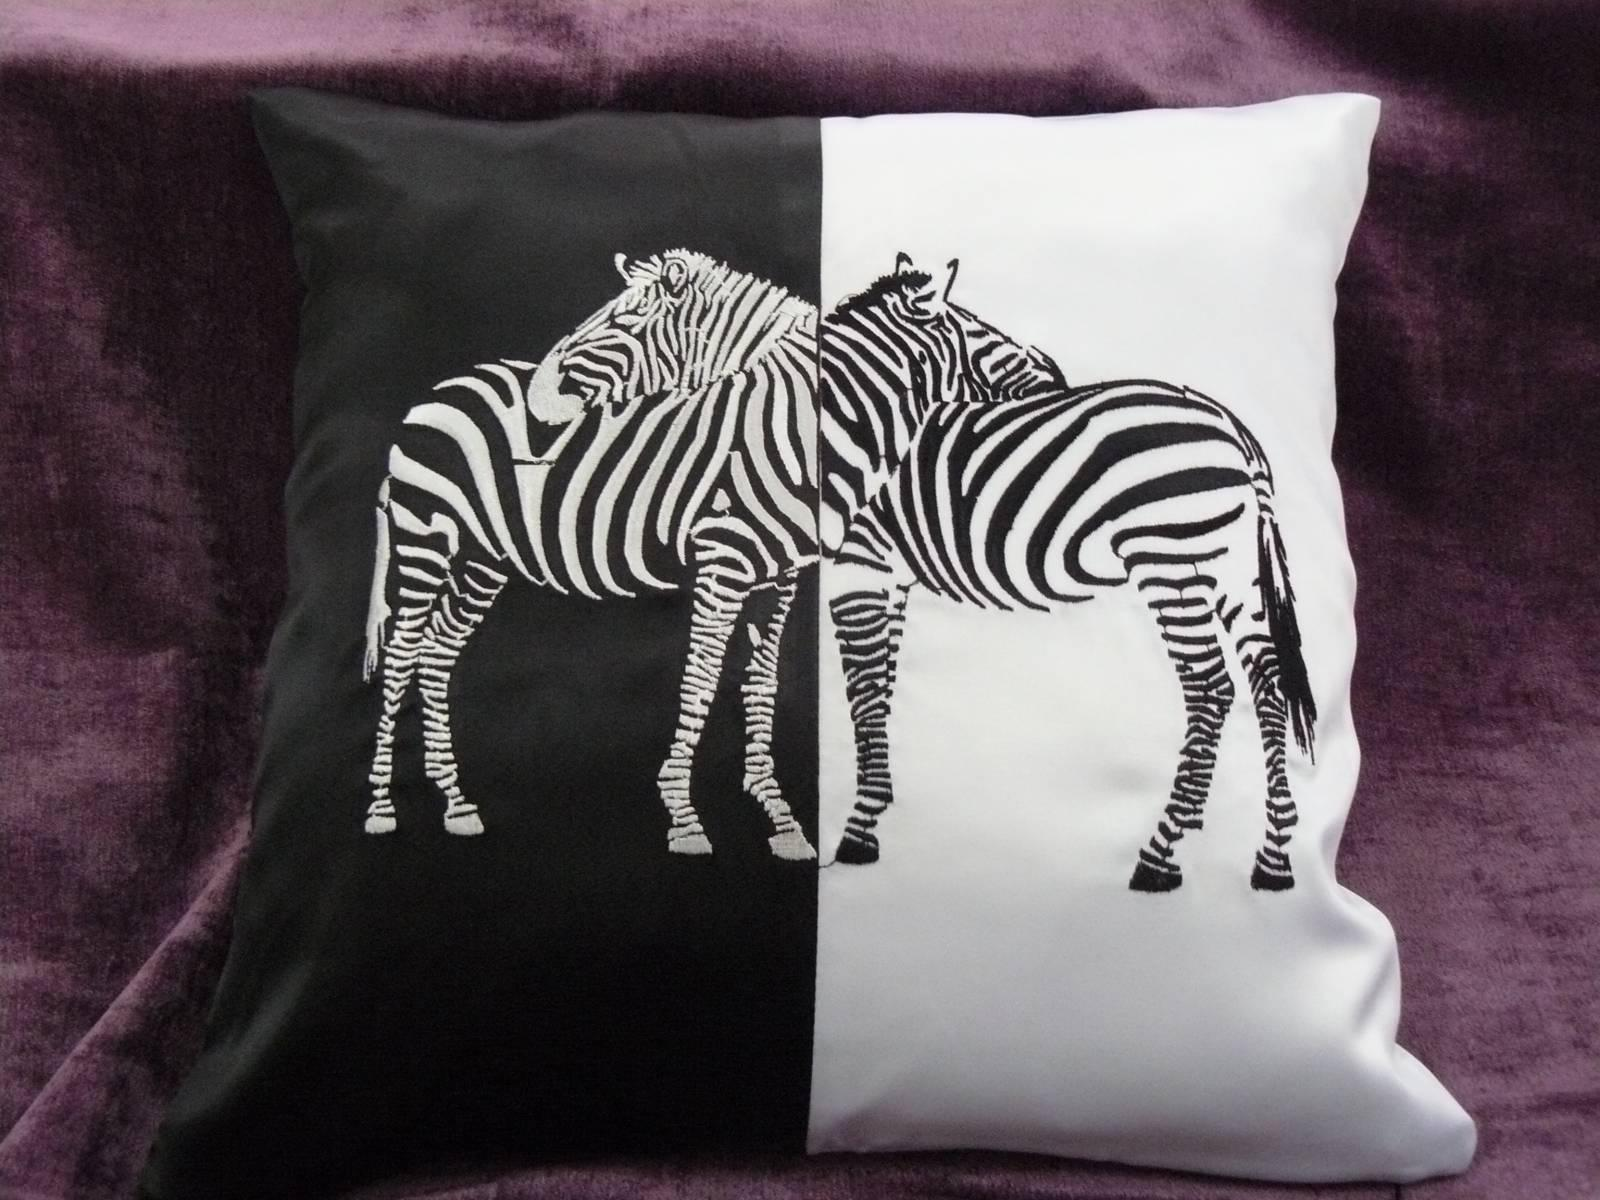 Embroidered pillow with two zebras design